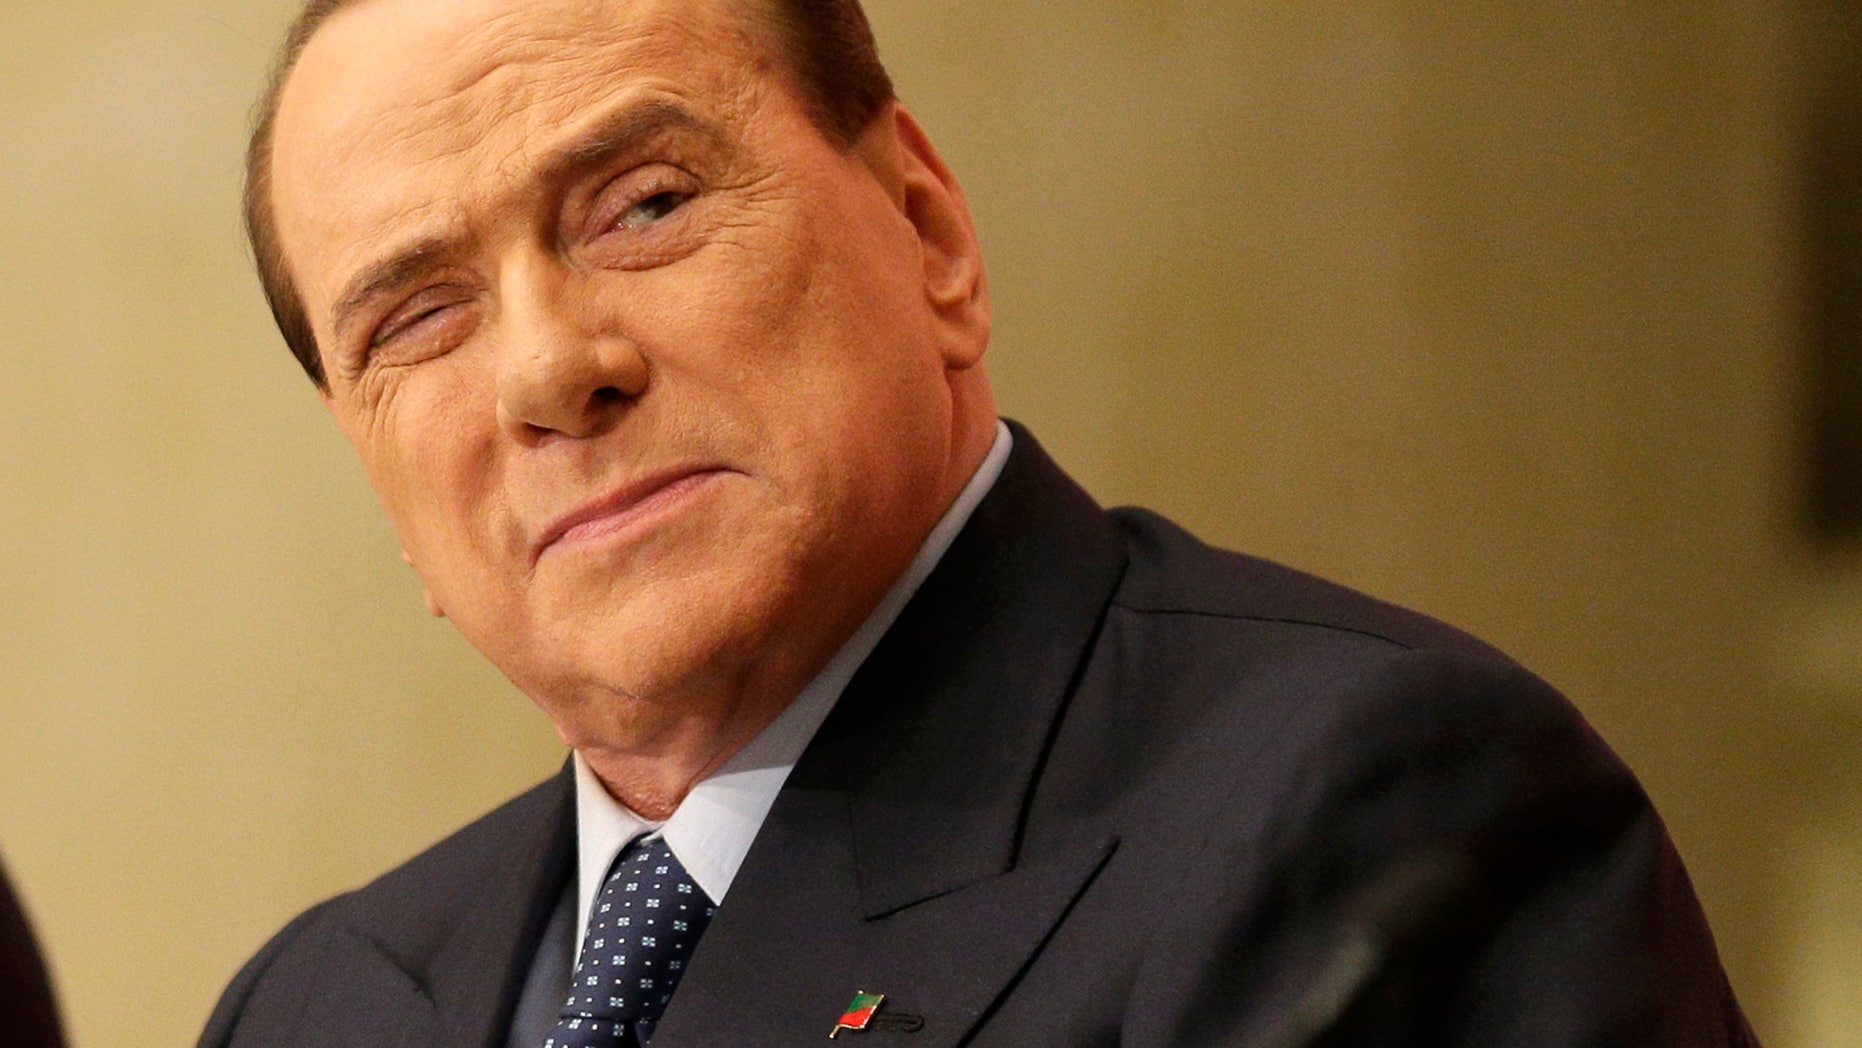 """In this Dec. 4, 2013 photo former Premier Silvio Berlusconi attends the launch of a book """"Sale, zucchero e caffe'"""" (Salt, Sugar and Coffee) by his friend, journalist Bruno Vespa, in Rome. Berlusconi's political corruption trial has opened in the southern city of Naples on Tuesday, Feb. 11, 2014, yet another legal challenge for the three-time former premier. Berlusconi is accused of paying a senator 3 million euros (4 million US dollars) to a bolt a rival government, which eventually fell. (AP Photo/Alessandra Tarantino)"""